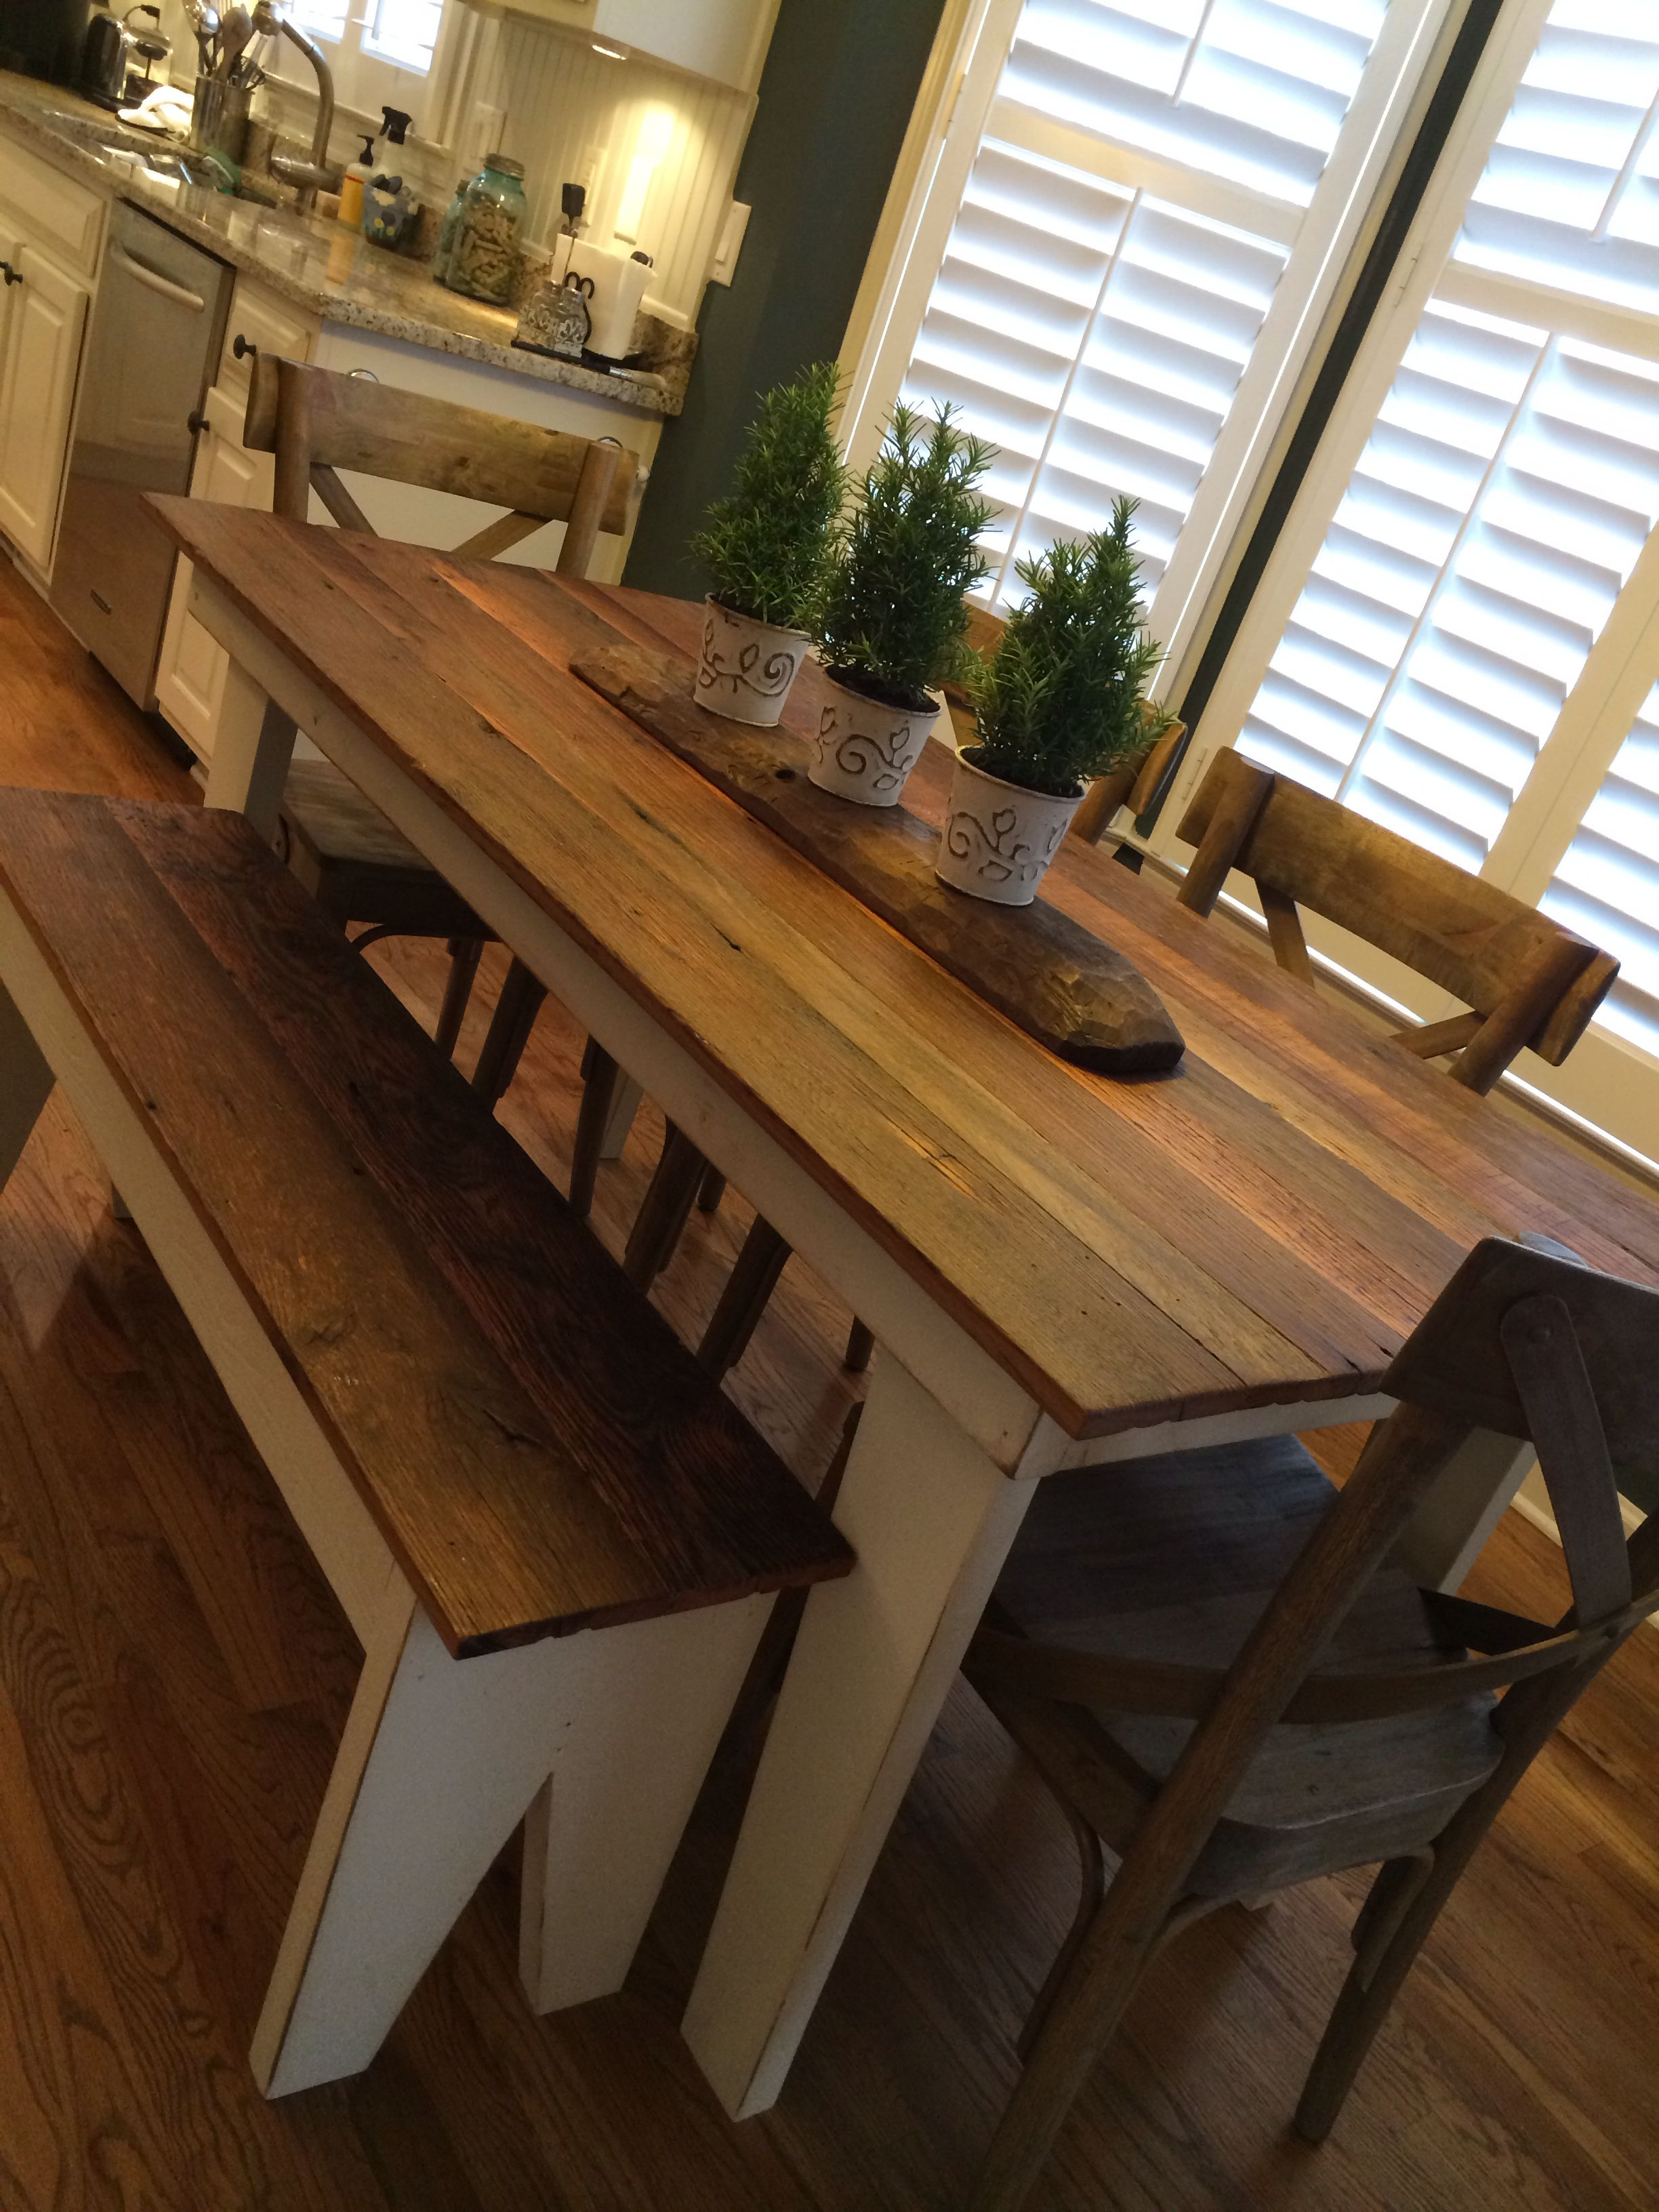 Farmhouse table made with old oak tongue and groove floor boards